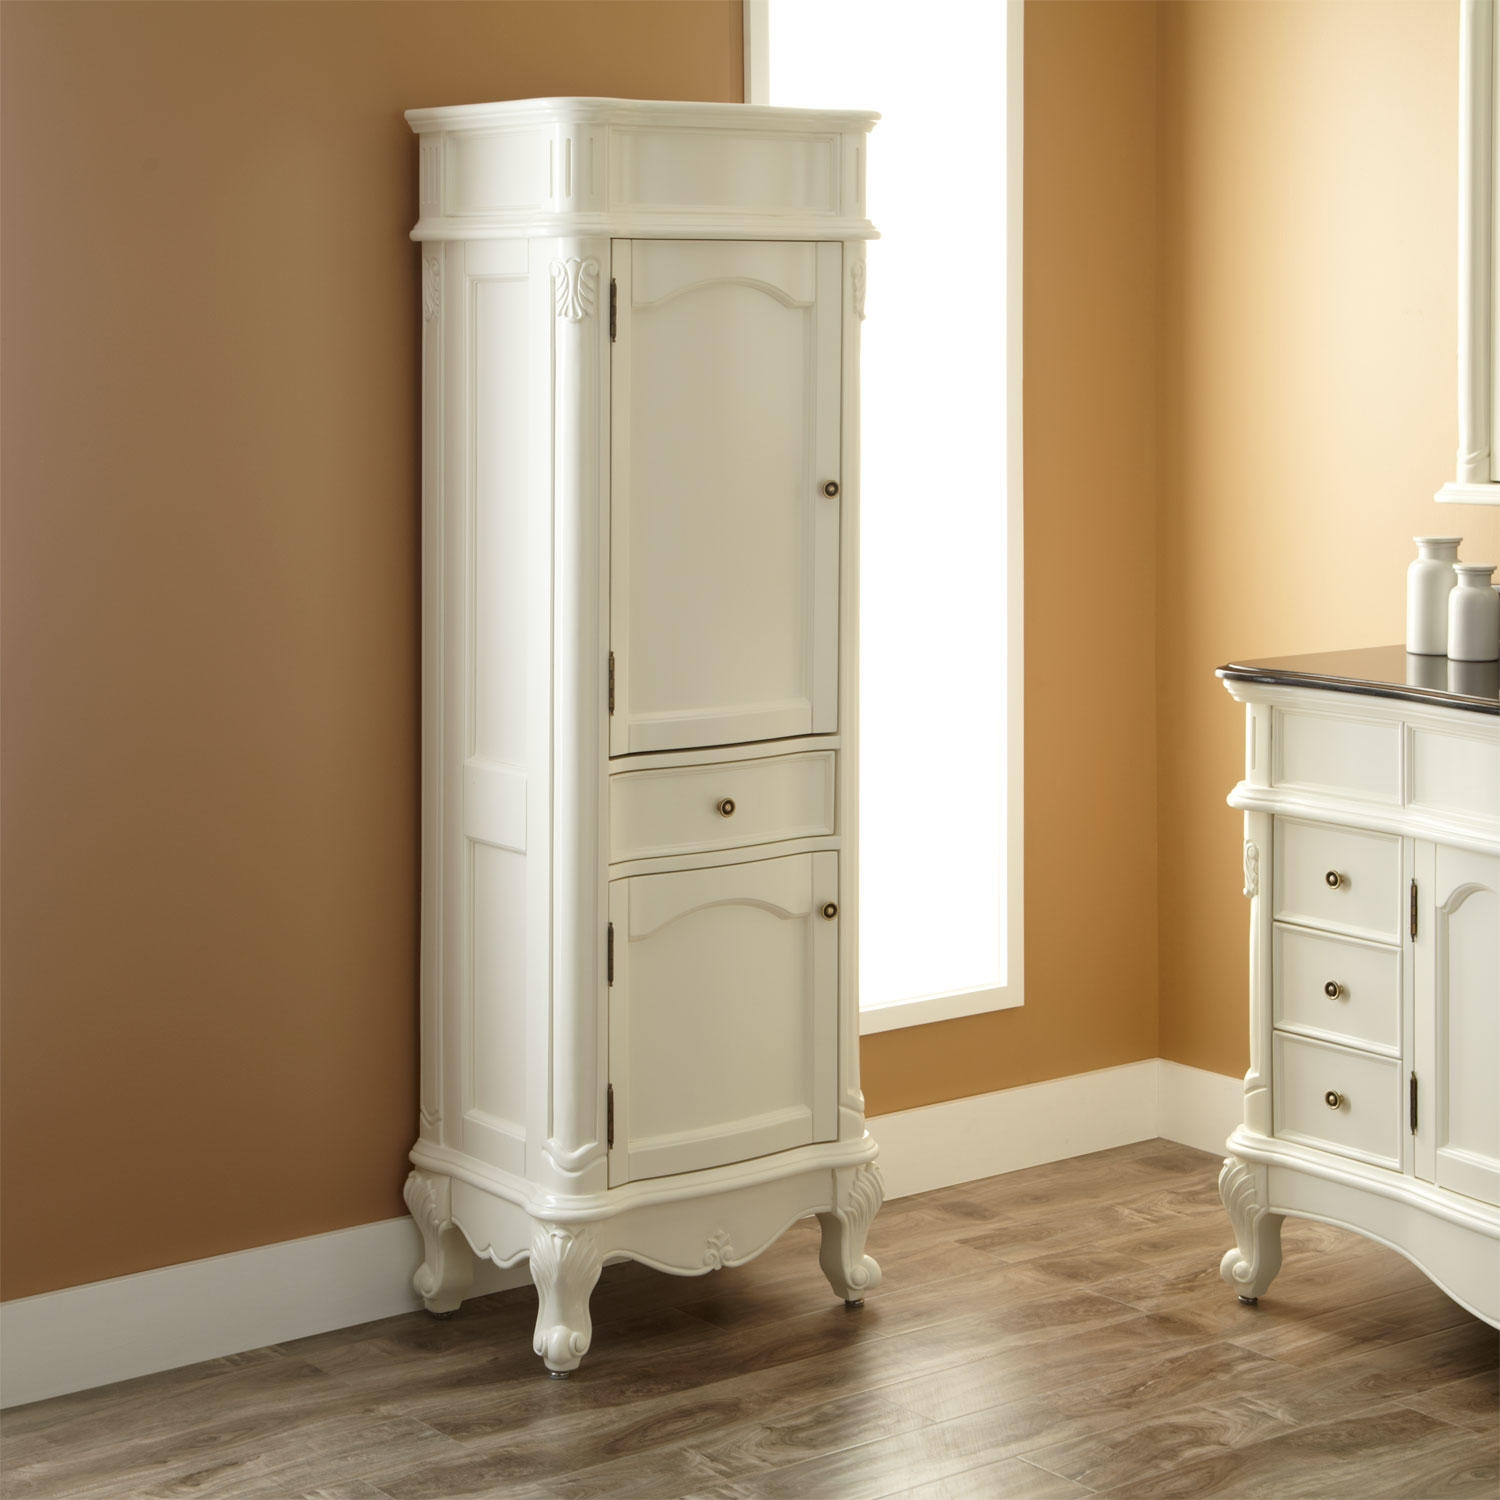 Permalink to Tall Storage Cabinet Bathroom